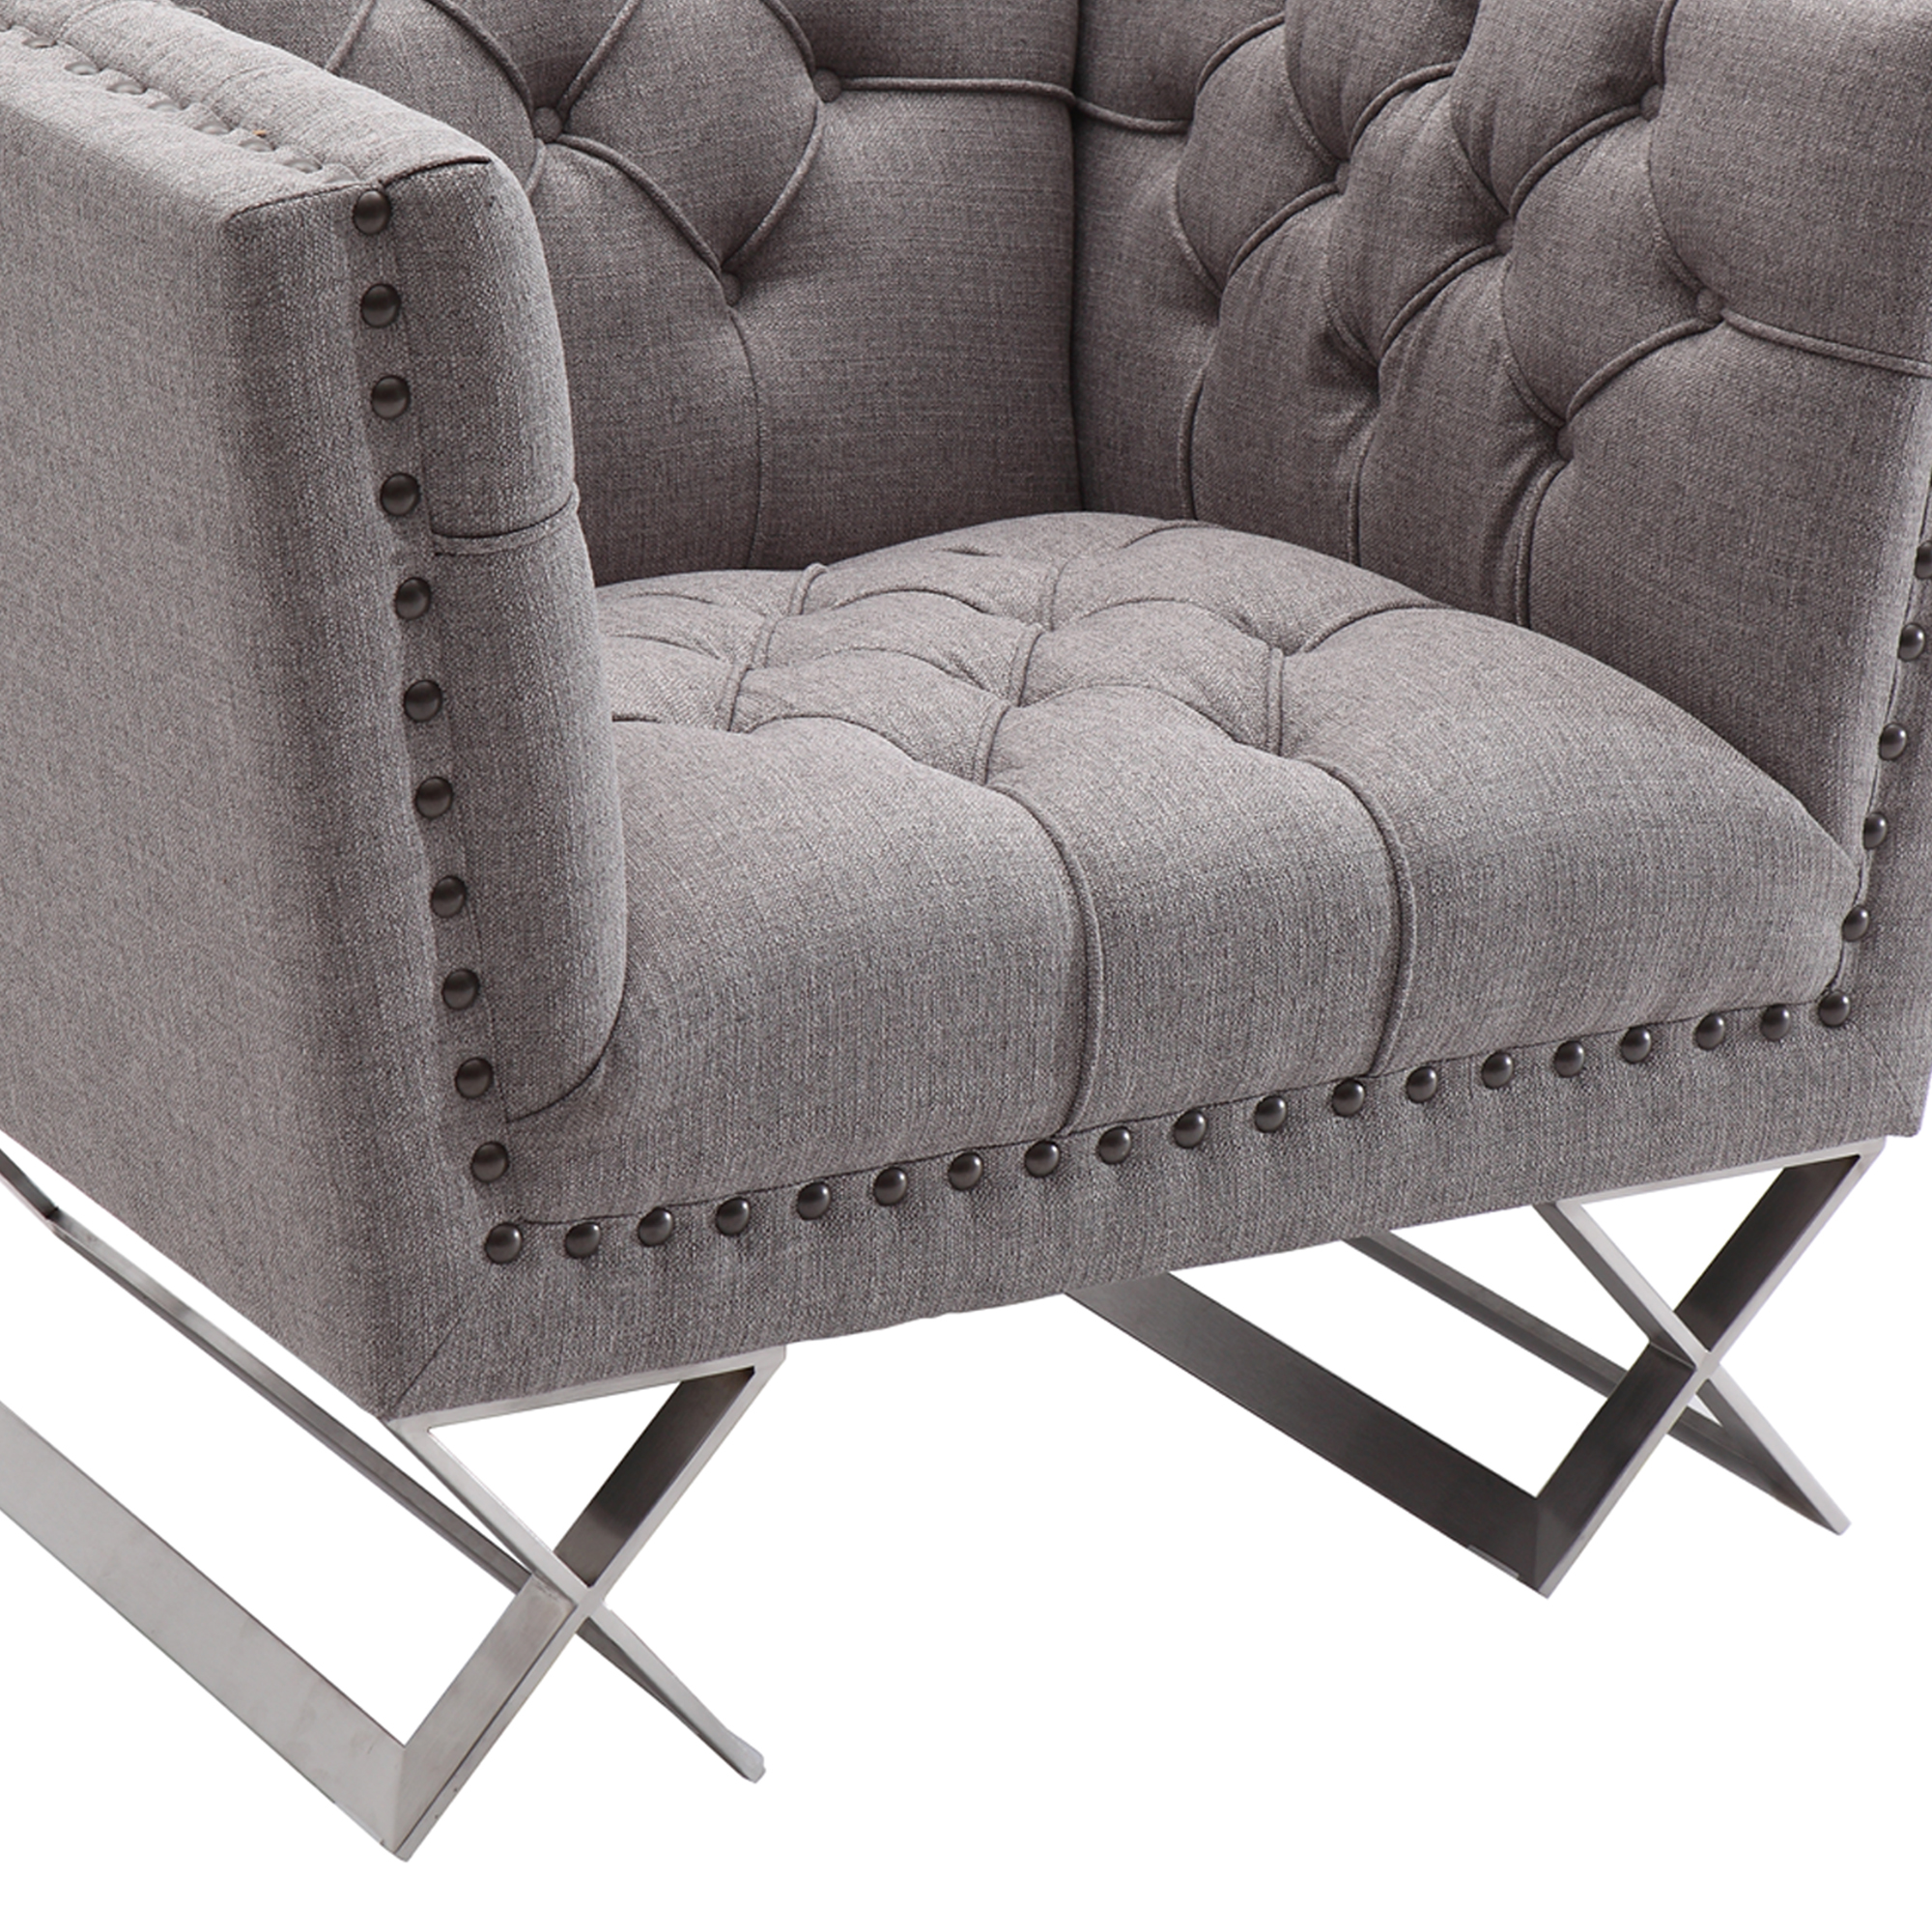 Armen Living Odyssey Sofa Chair in Brushed Stainless Steel finish with Grey Tweed and Black Nail heads